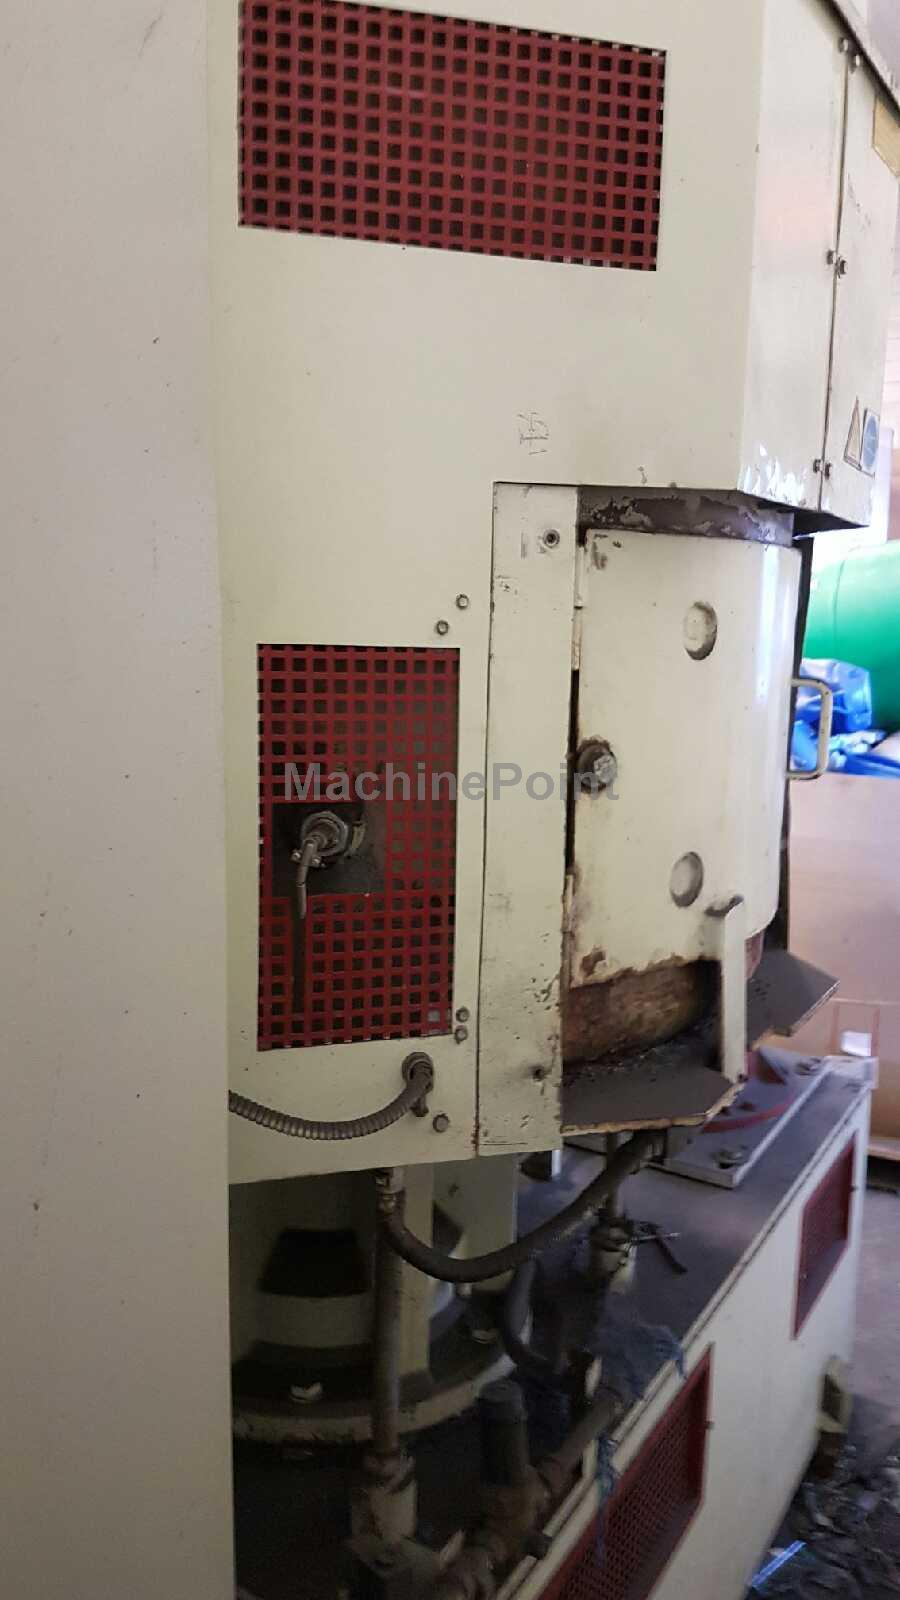 ARTEC - 85D - Used machine - MachinePoint